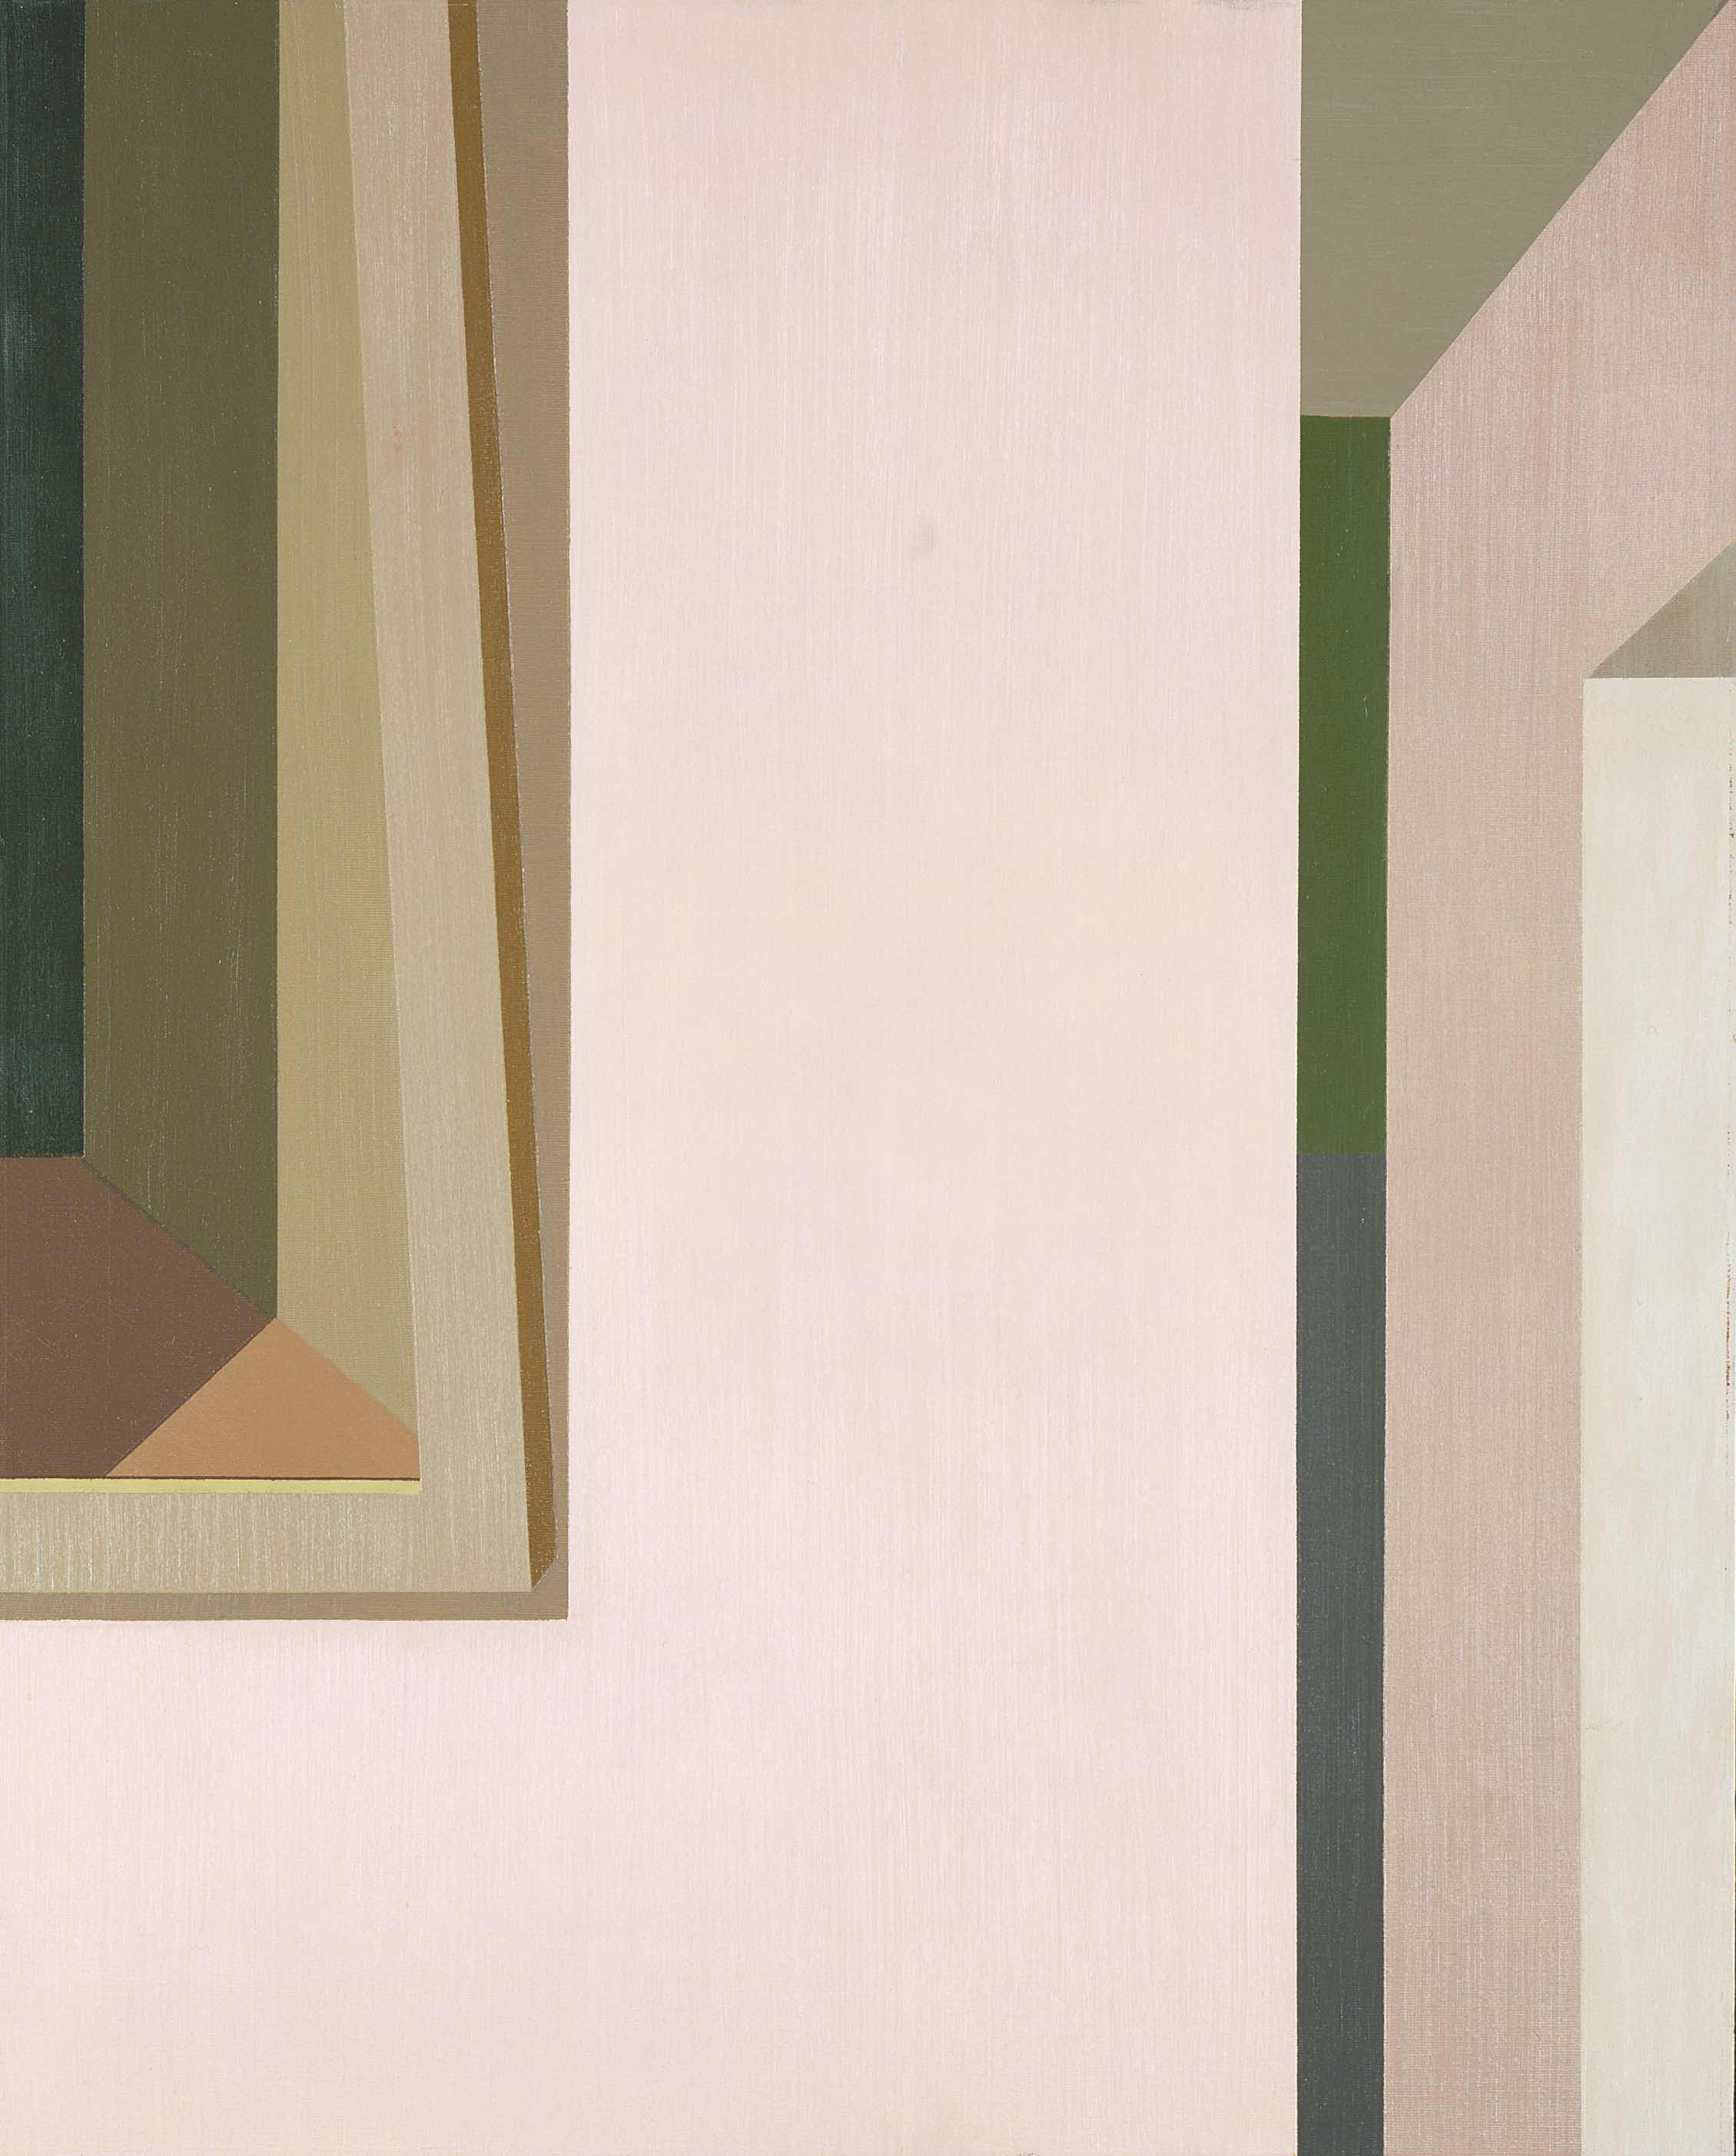 Helen Lundeberg (1908-1999)   Untitled (Interior with Doorway) , 1962  oil on canvas 30 x 24 inches; 76.2 x 61 centimeters